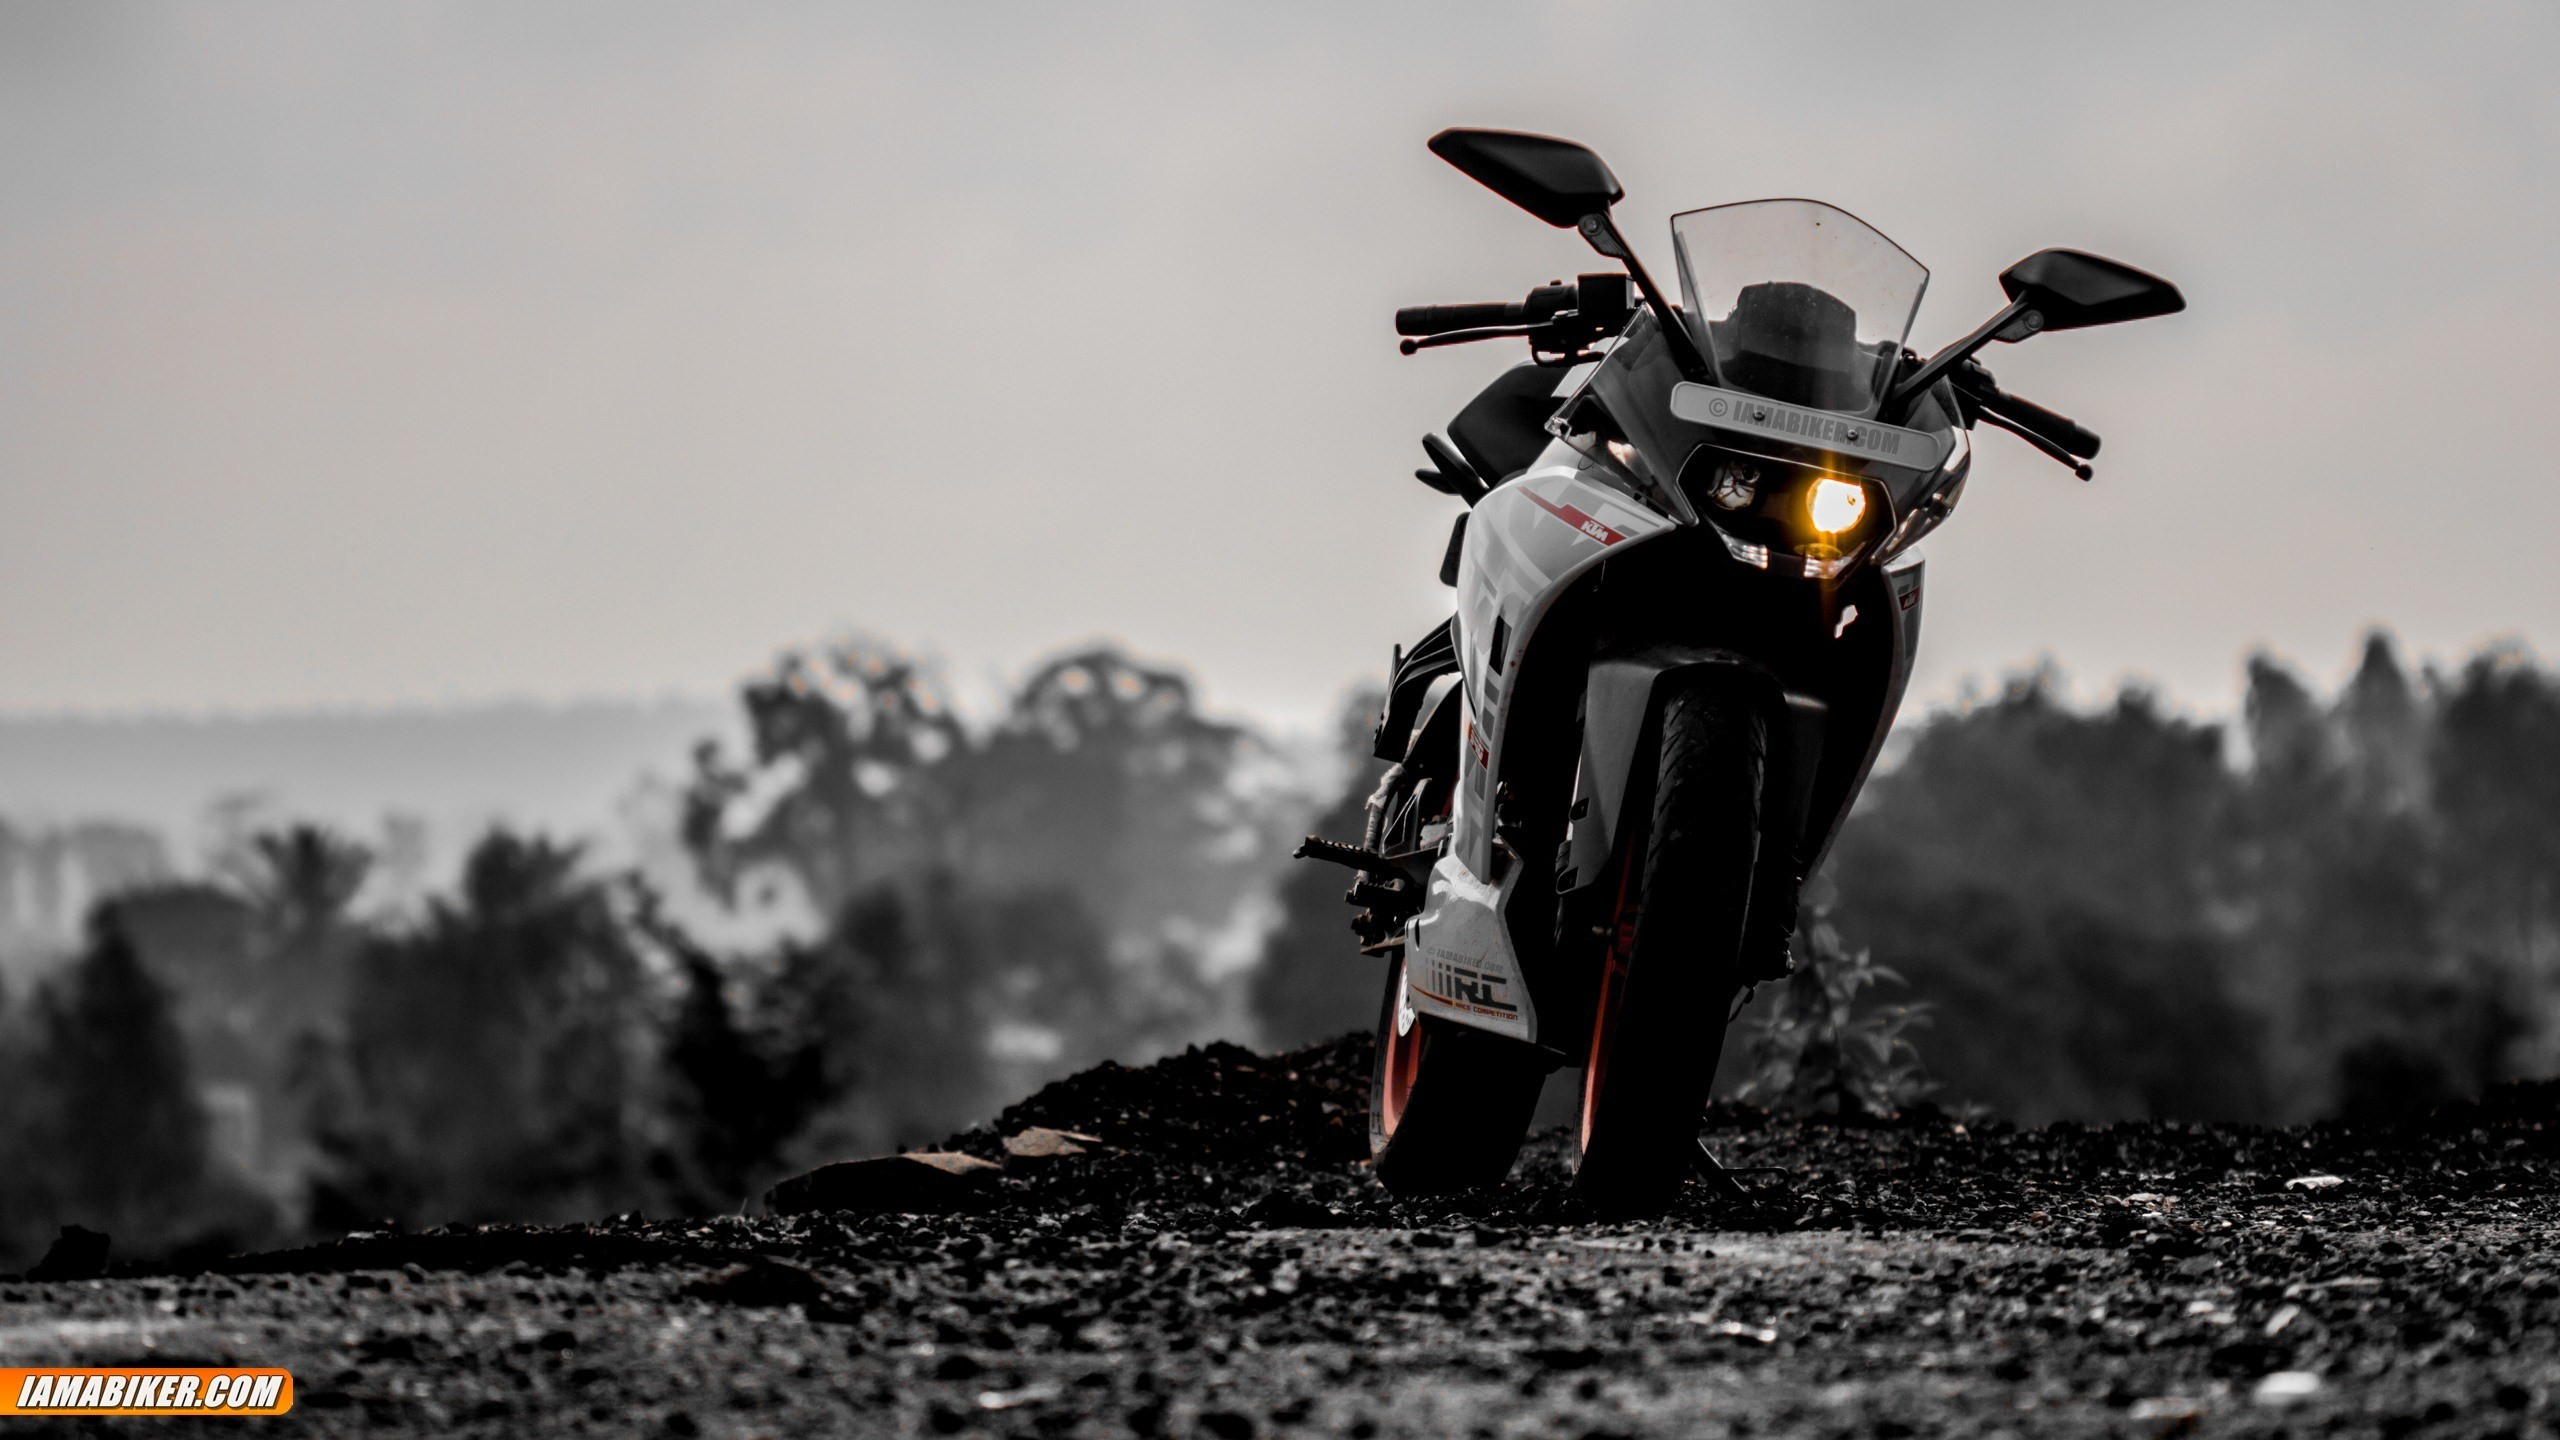 KTM RC 390 wallpapers – 3